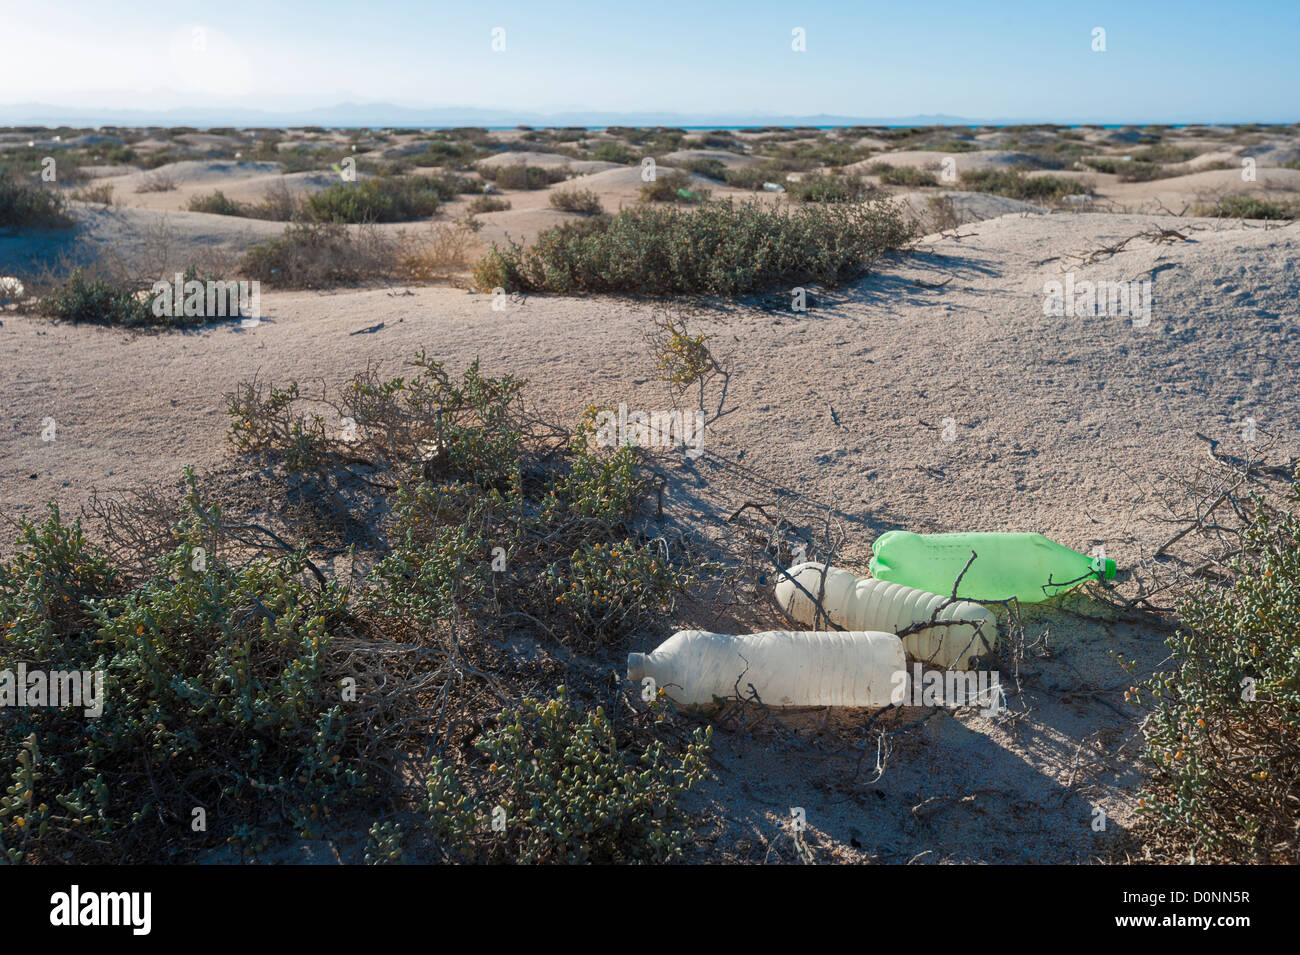 Old rubbish discarded on a remote desert island concept environmental issues - Stock Image